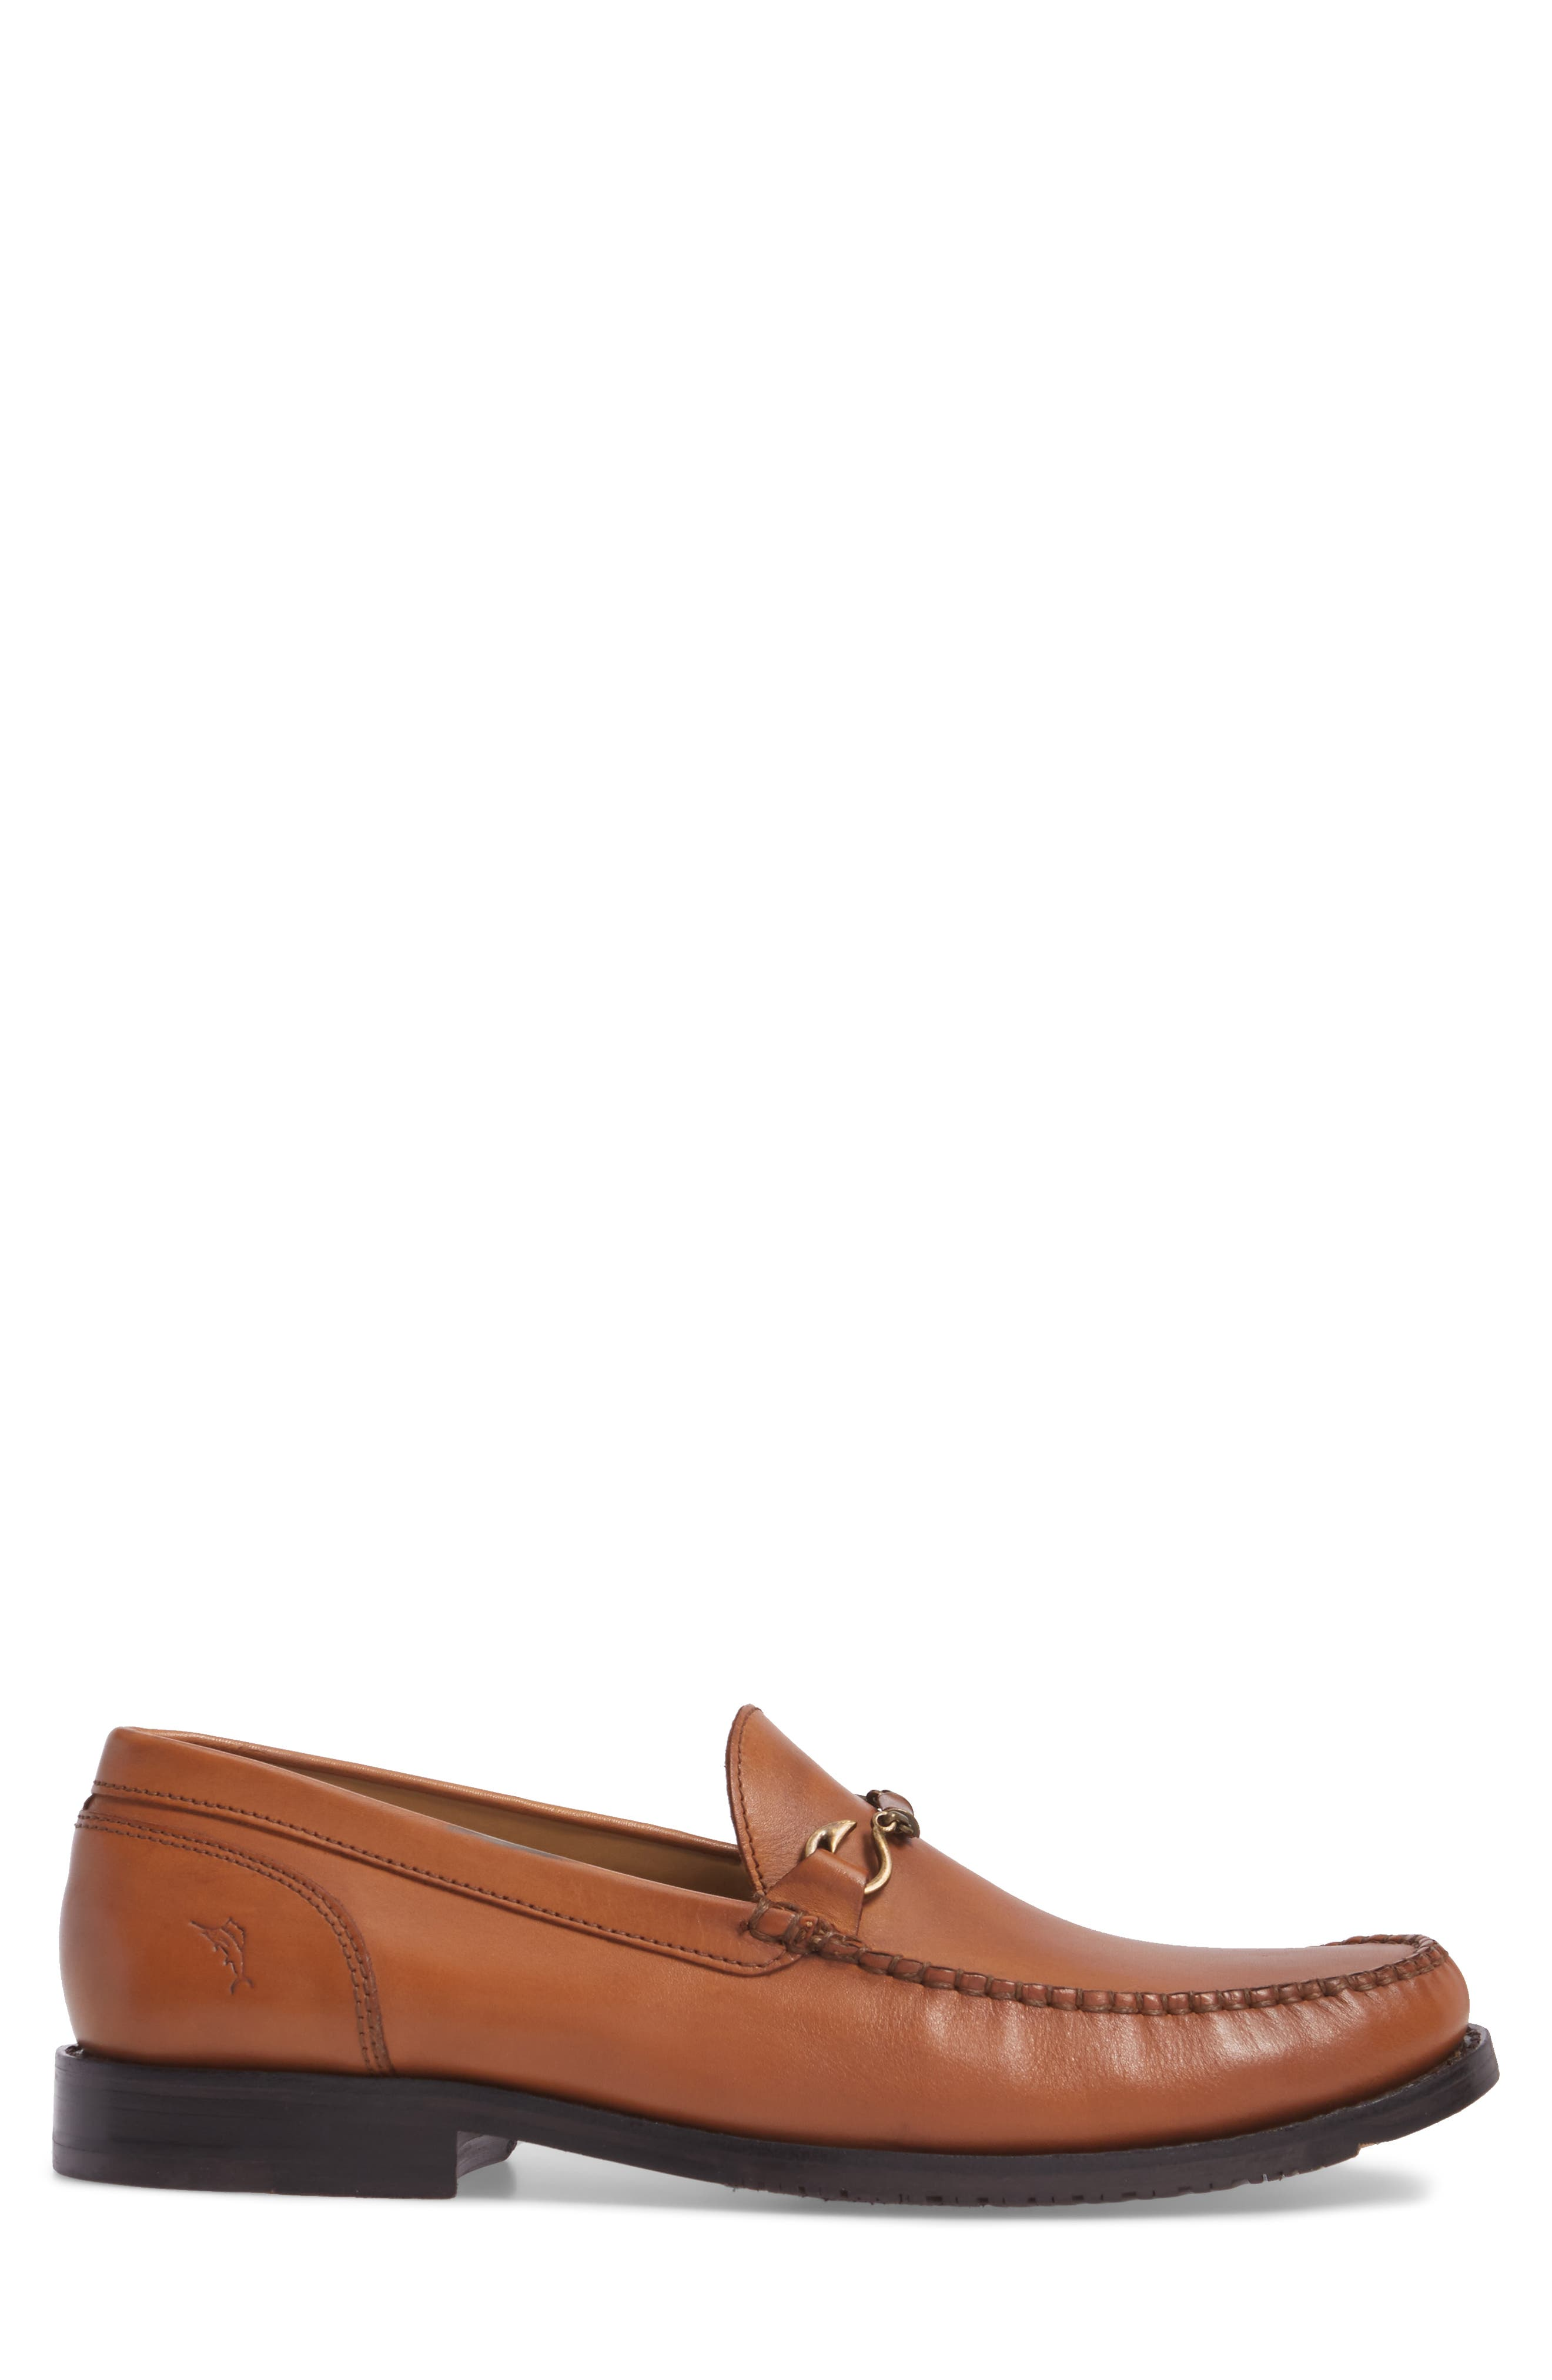 Maya Bay Bit Loafer,                             Alternate thumbnail 3, color,                             TAN LEATHER